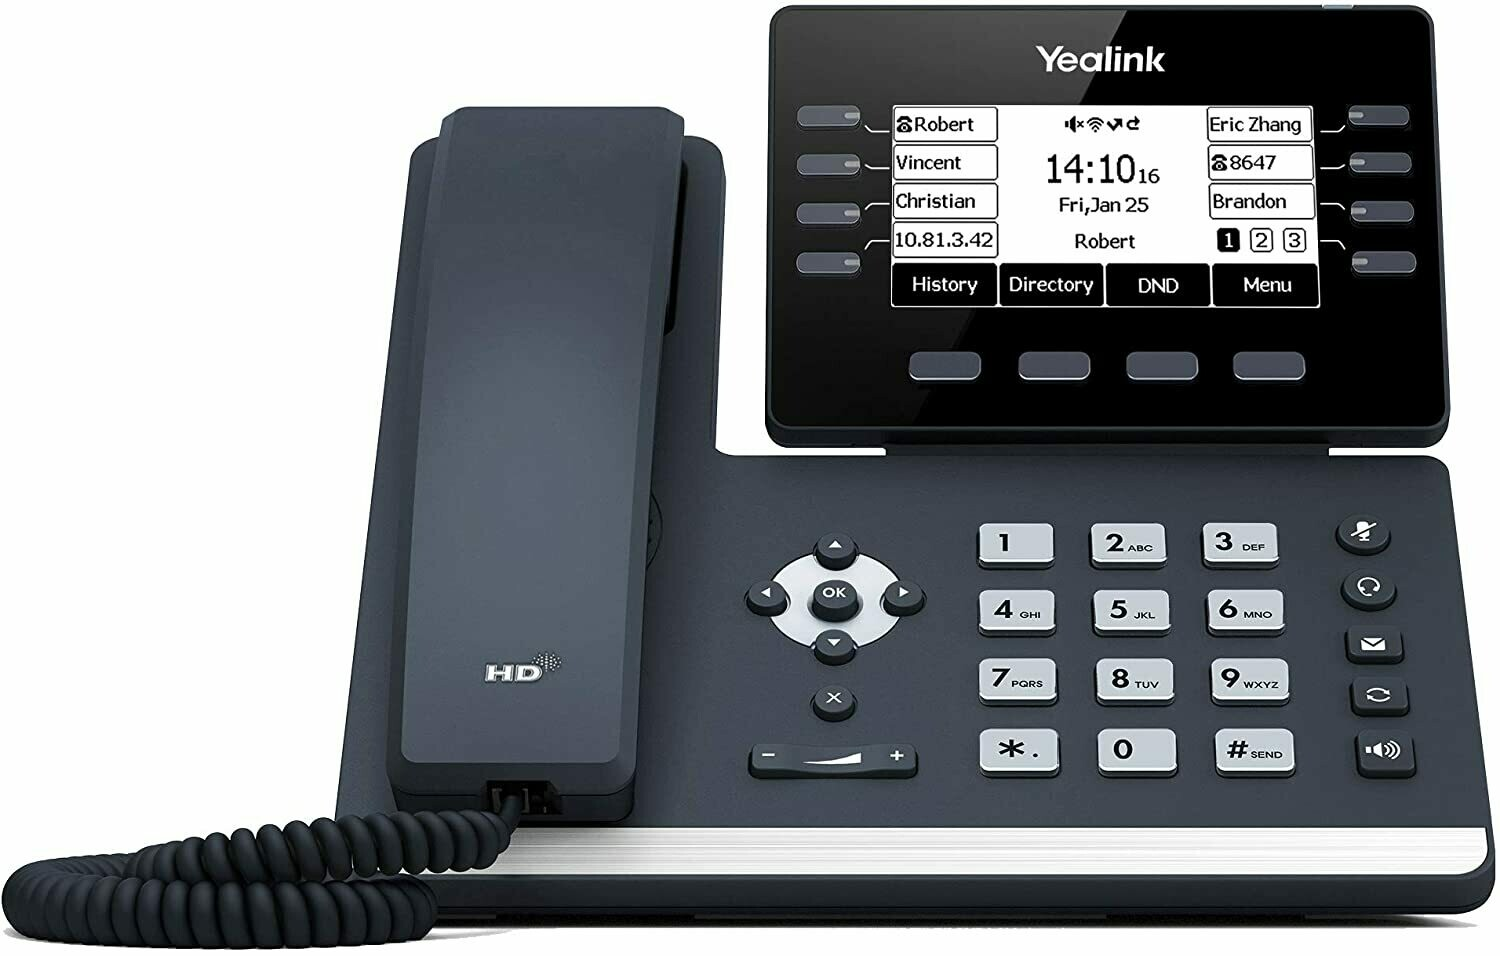 USED Yealink T53W IP Phone w/ built-in Bluetooth and Wi-Fi